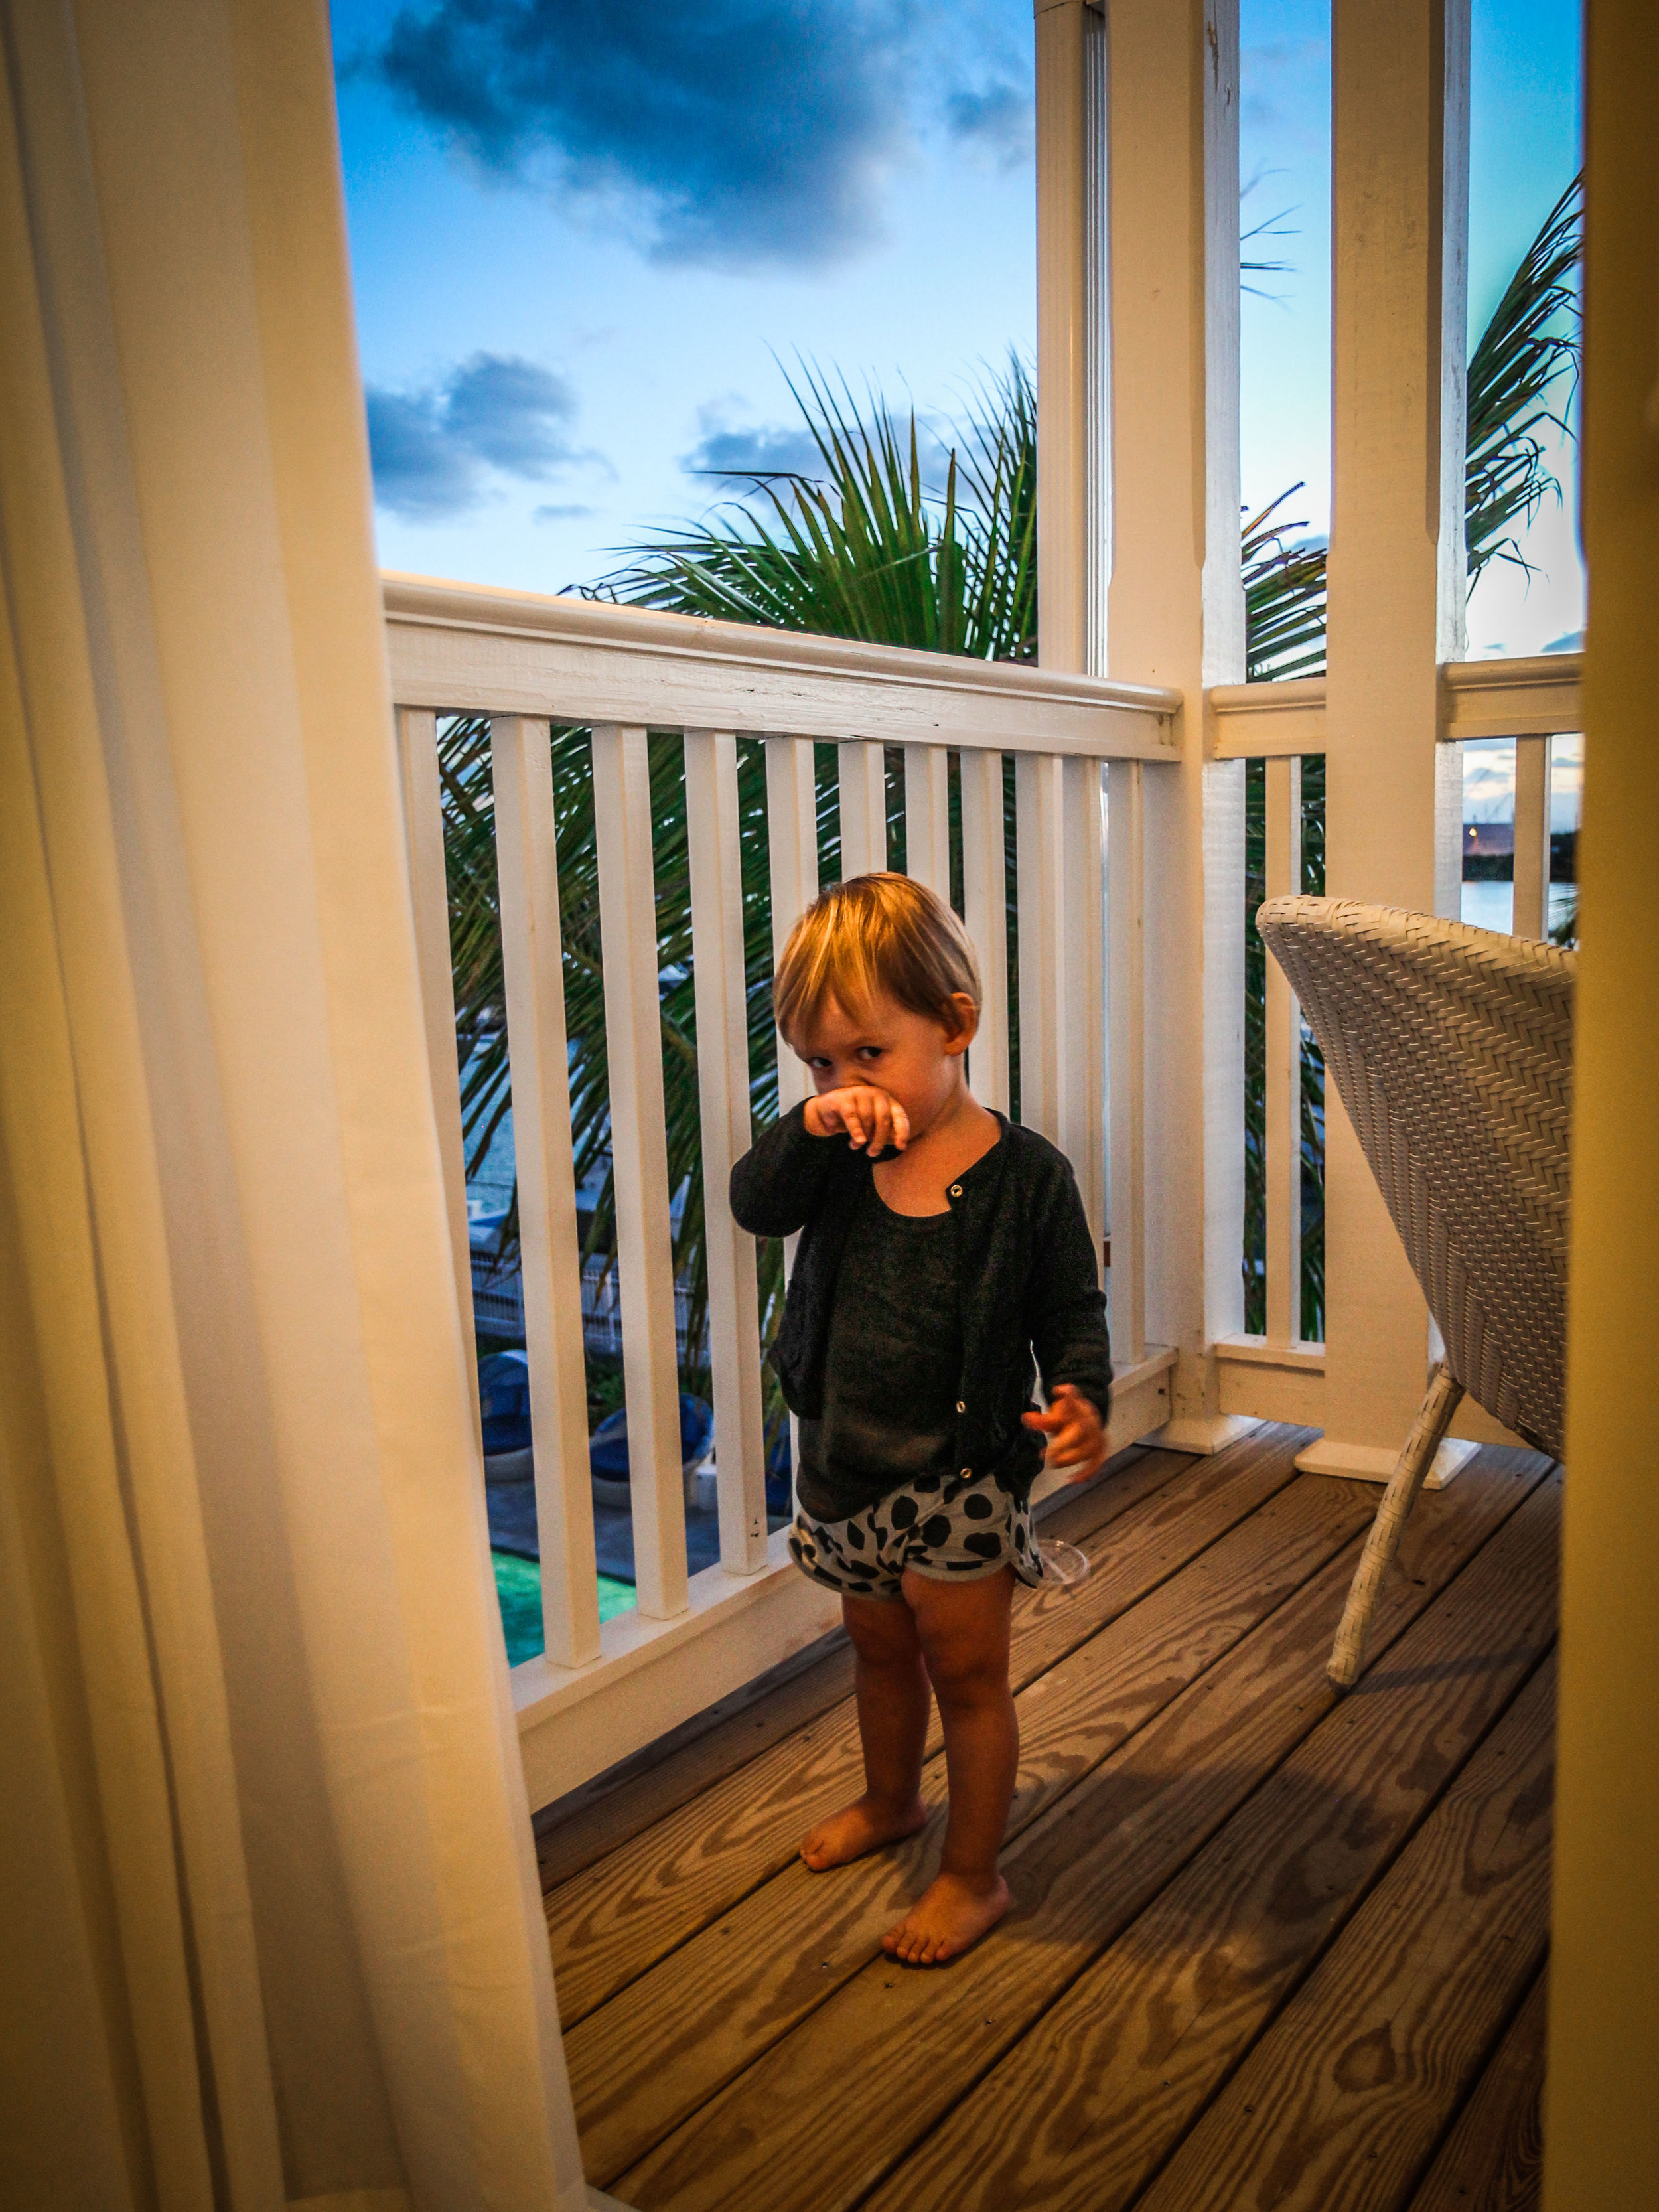 Florida_keys-_Key_west_To_do_reizen_met_kinderen-34.jpg